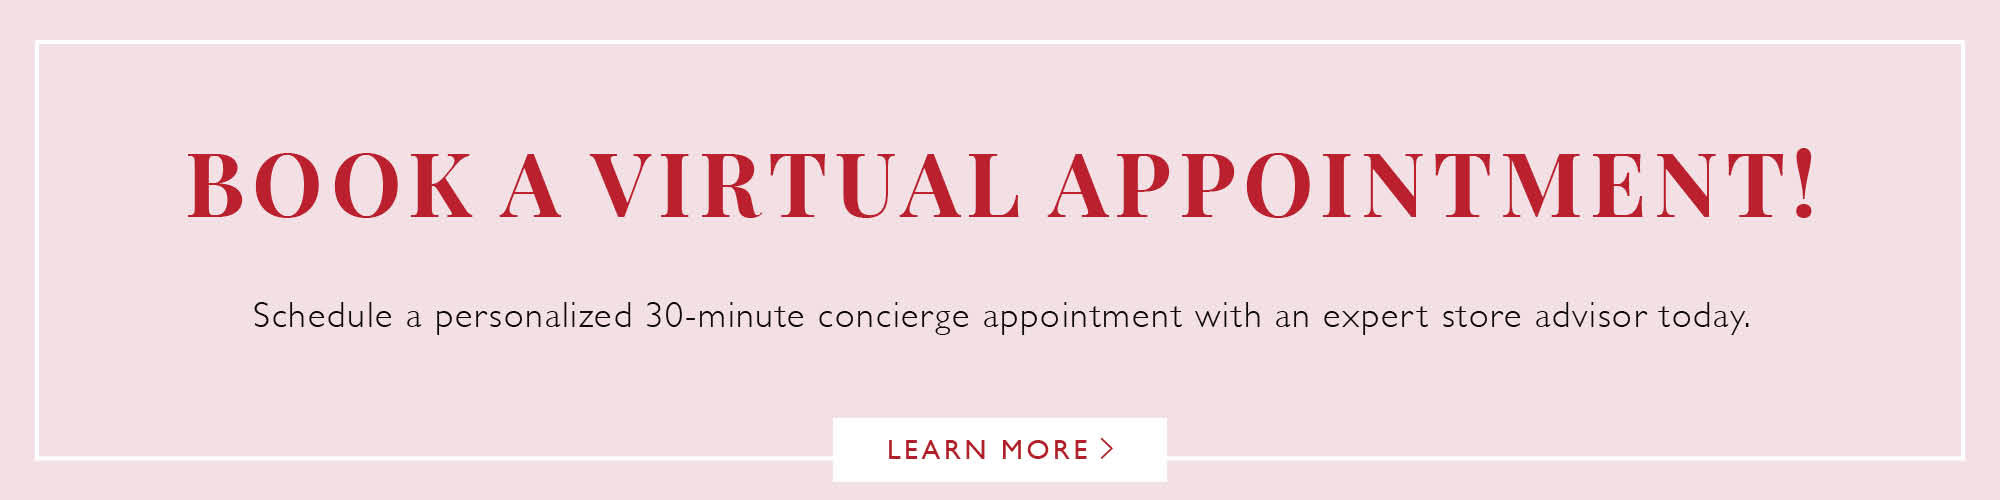 Snuggle Bugz Virtual Appointments